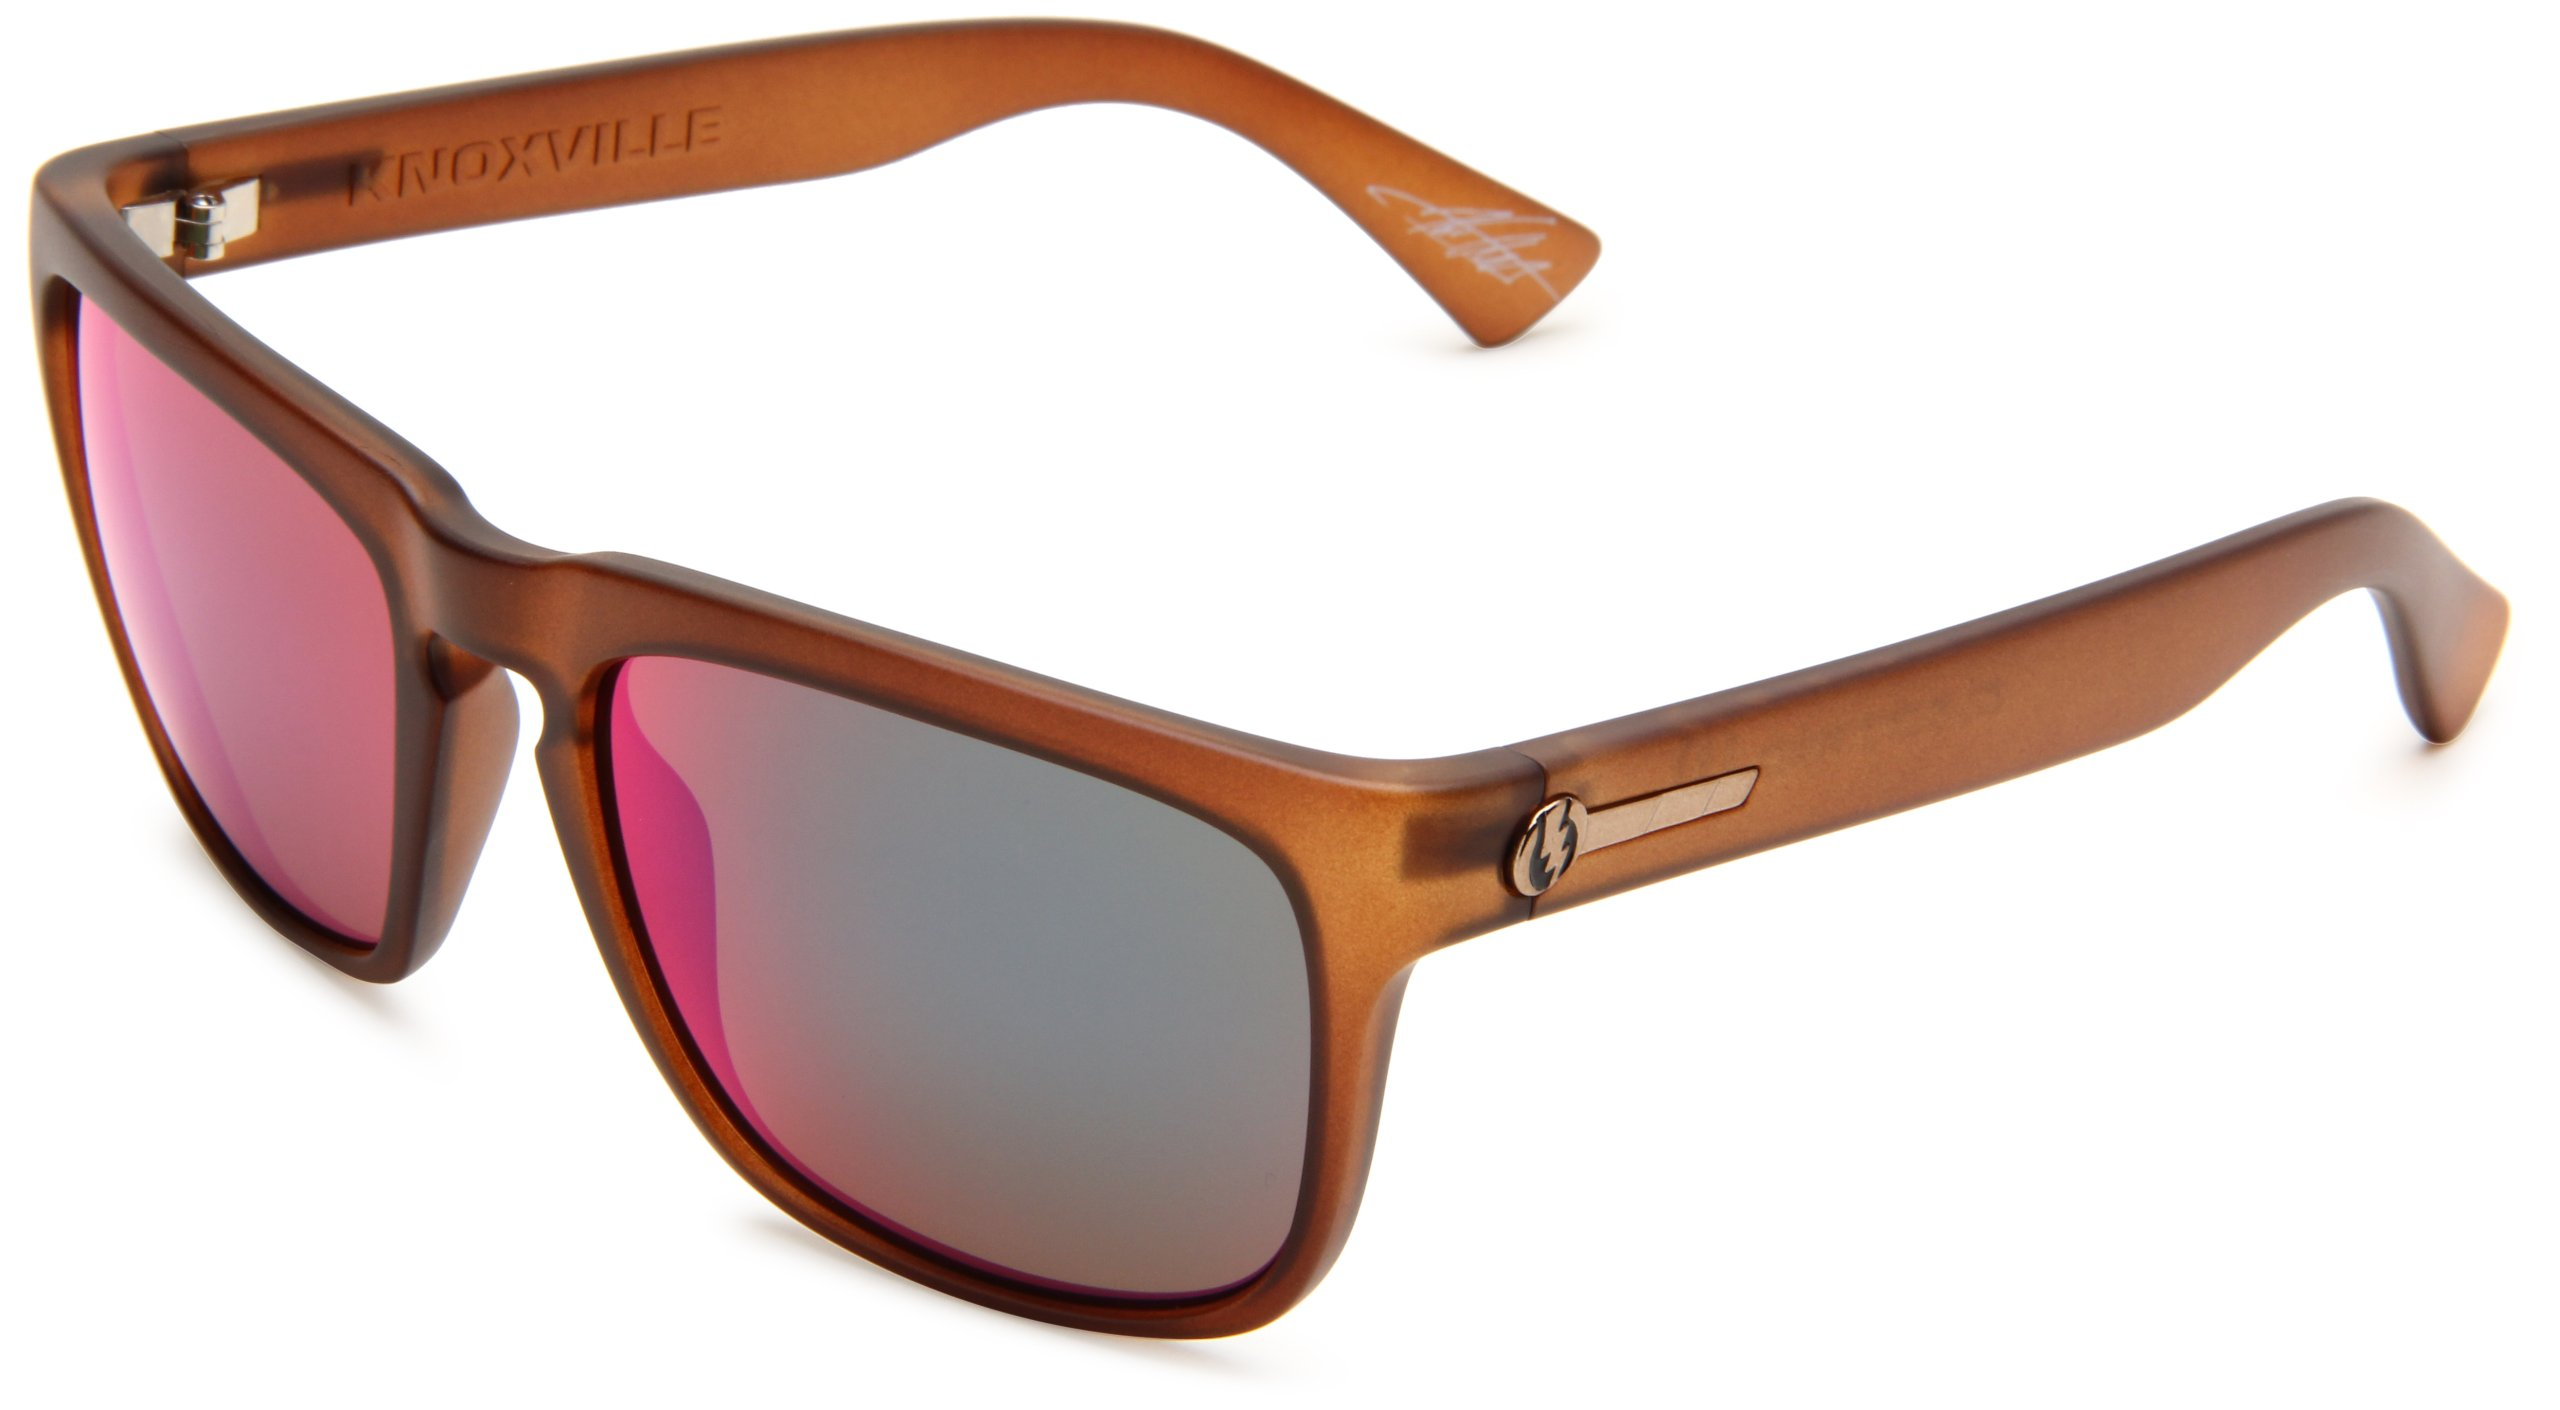 Electric Visual Knoxville Plasma Sunglasses